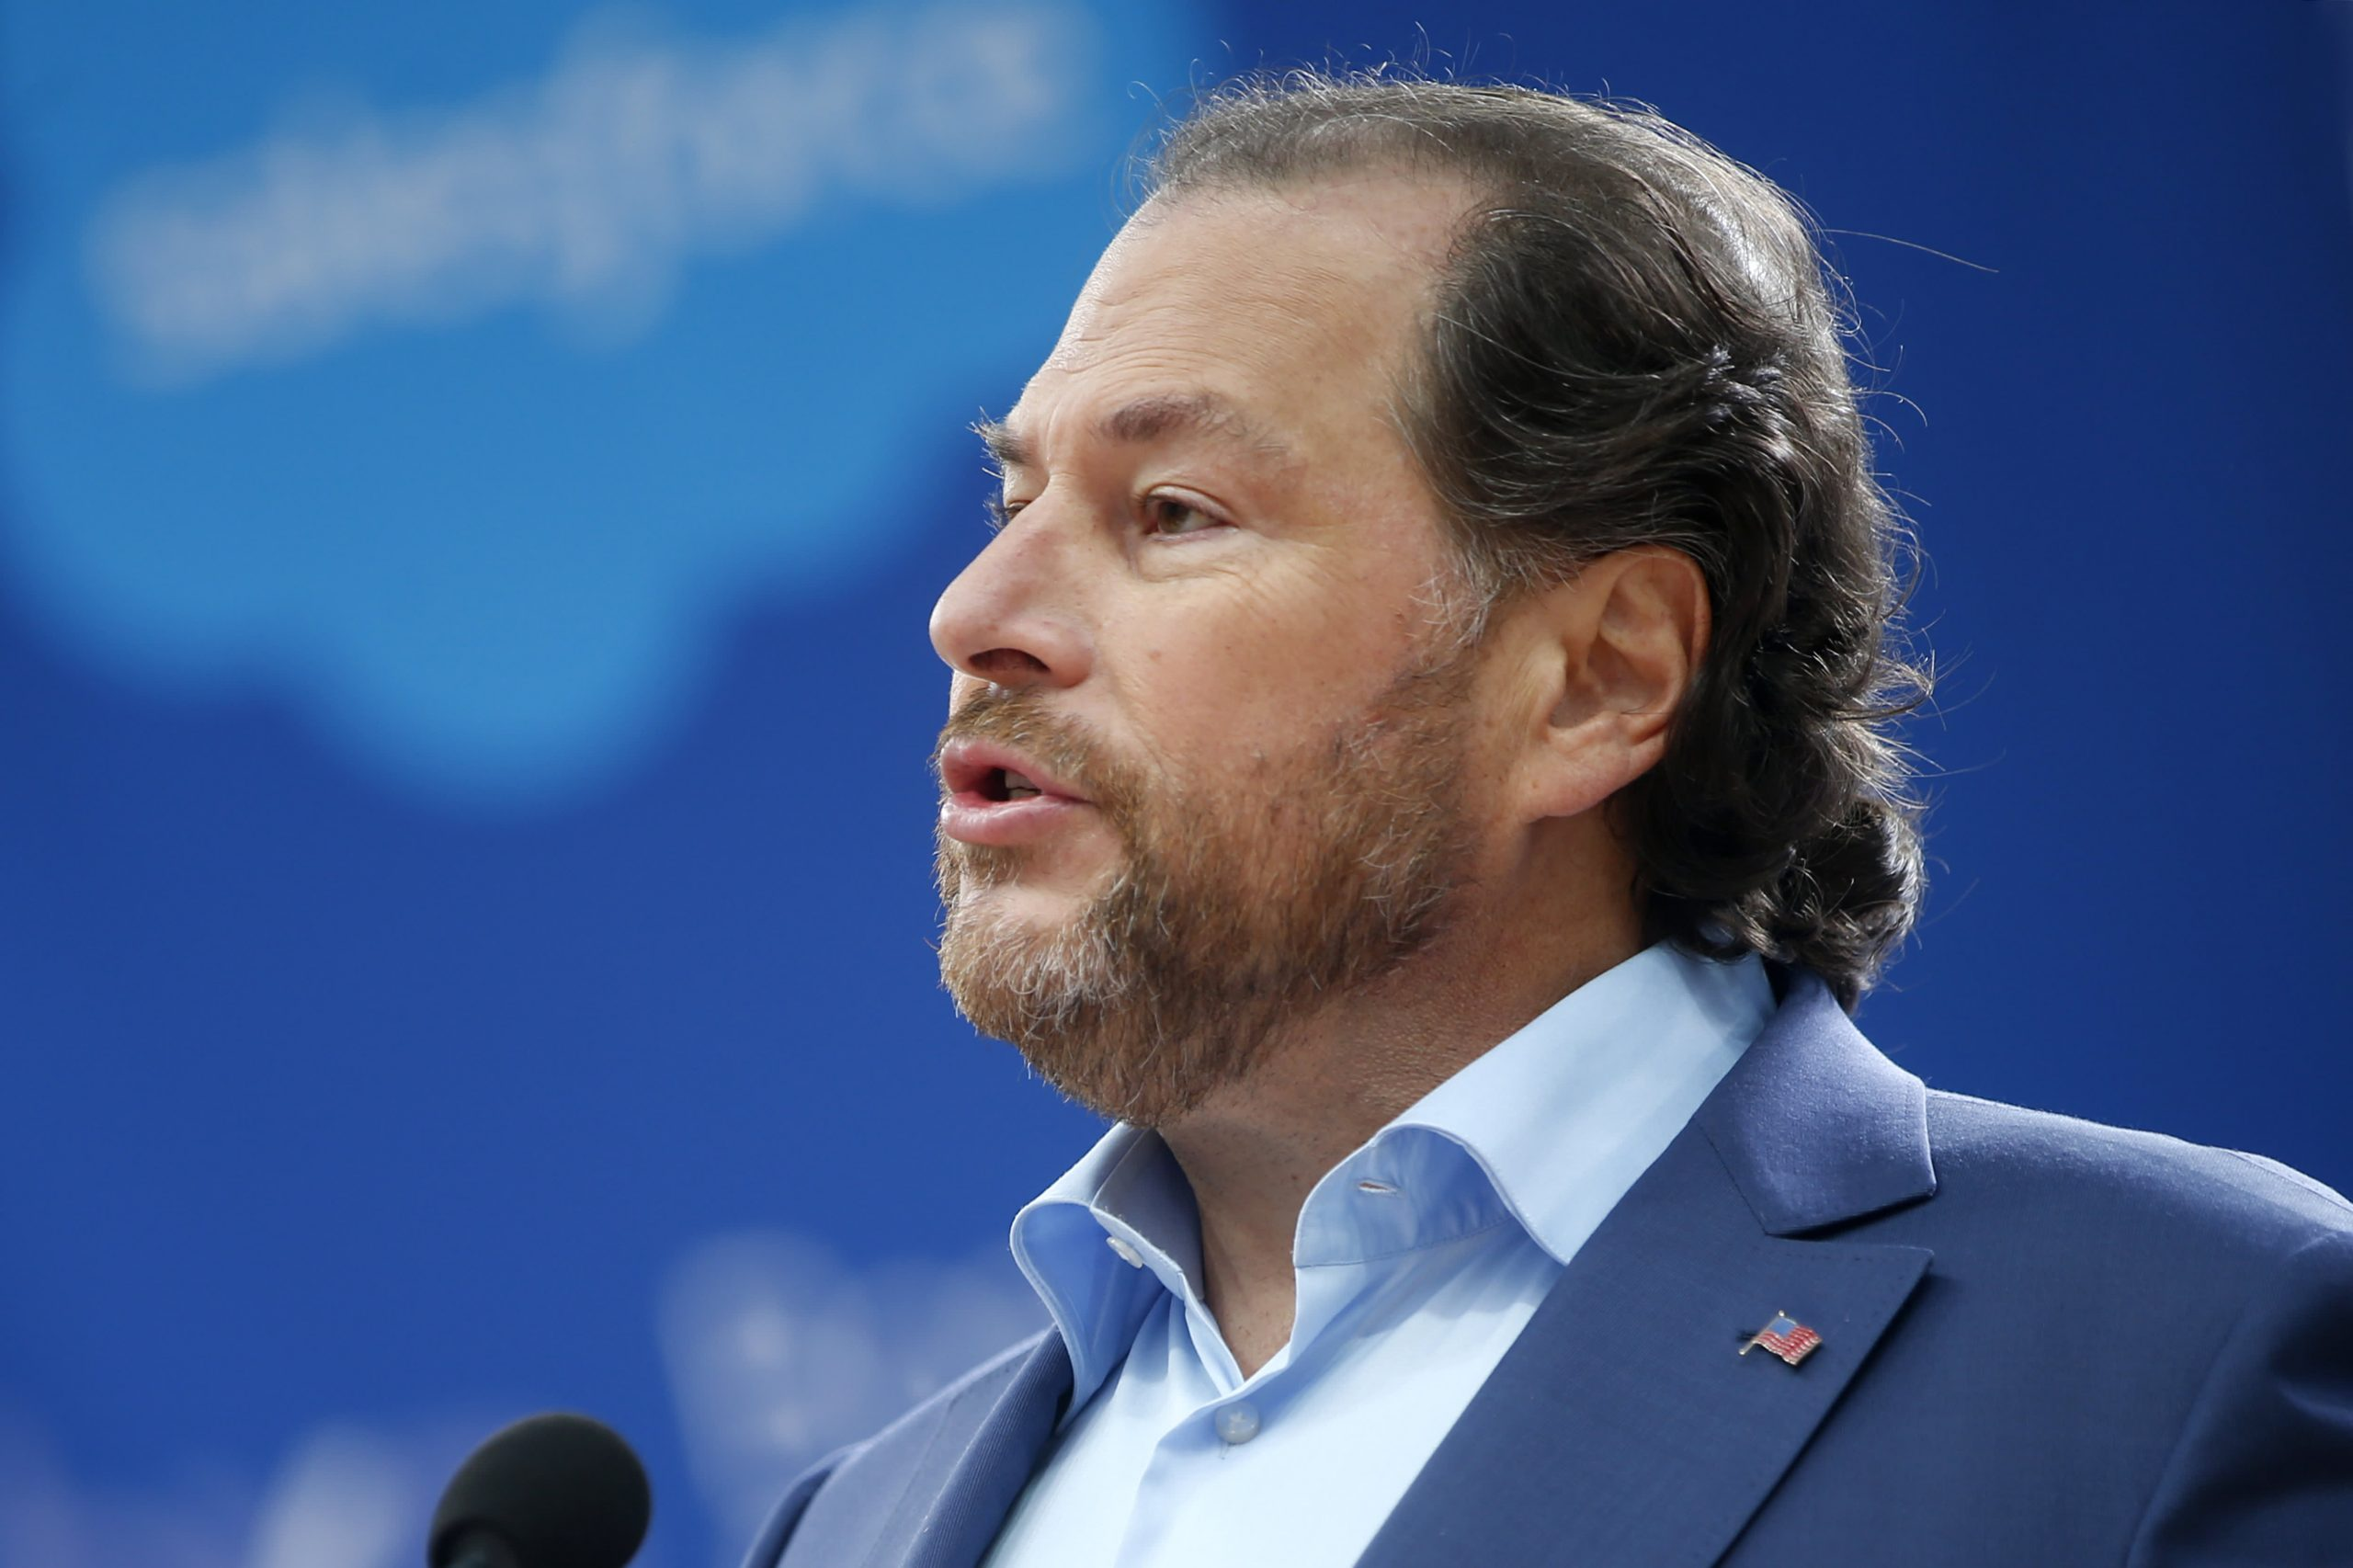 Salesforce will reopen San Francisco tower in May